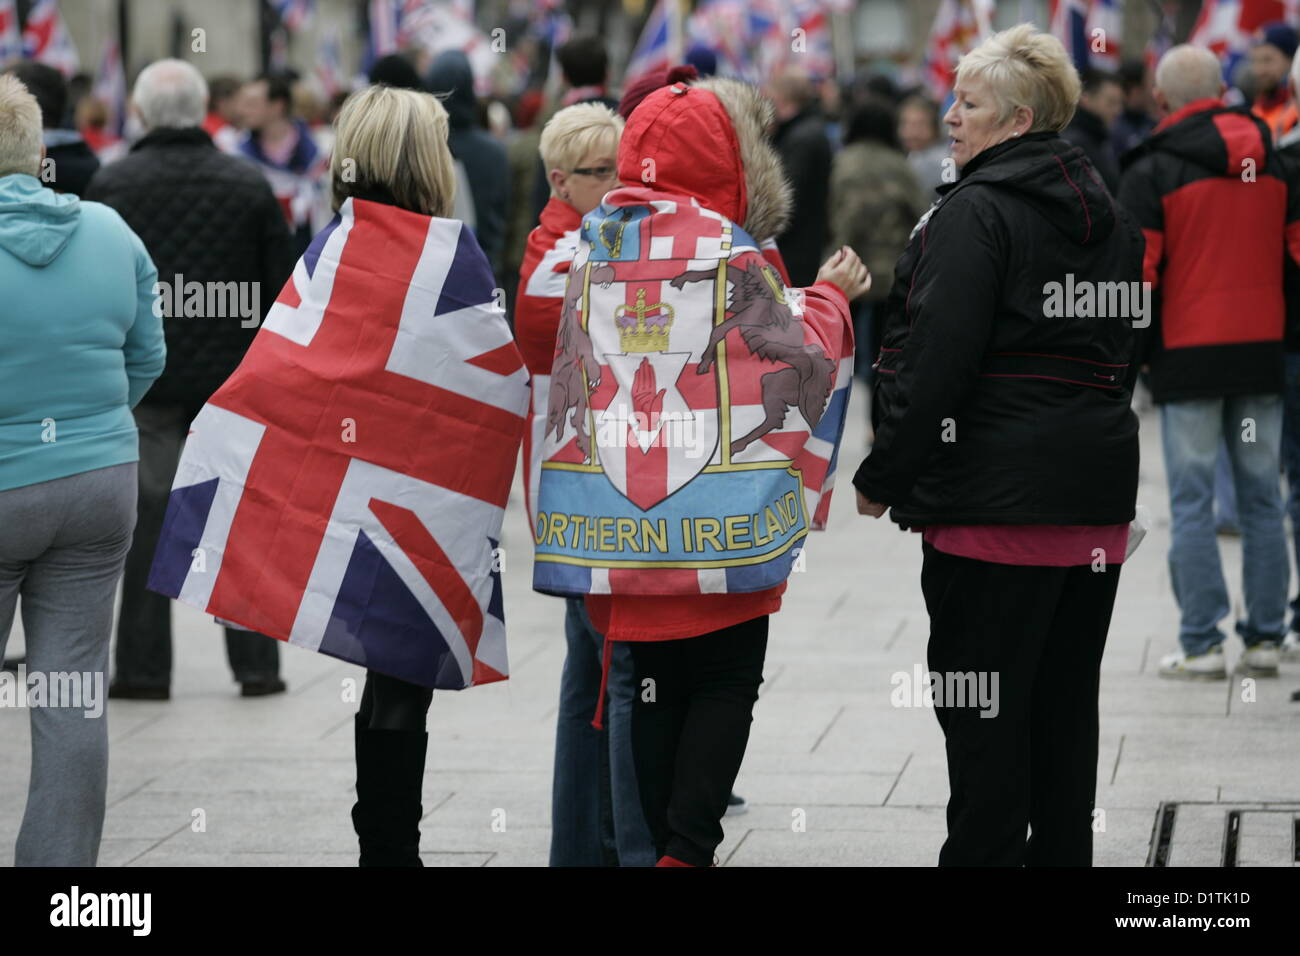 Belfast, UK. 5th Jan, 2013. Two women drape a Union jack and a Northern Ireland Flag across their back at the flag - Stock Image